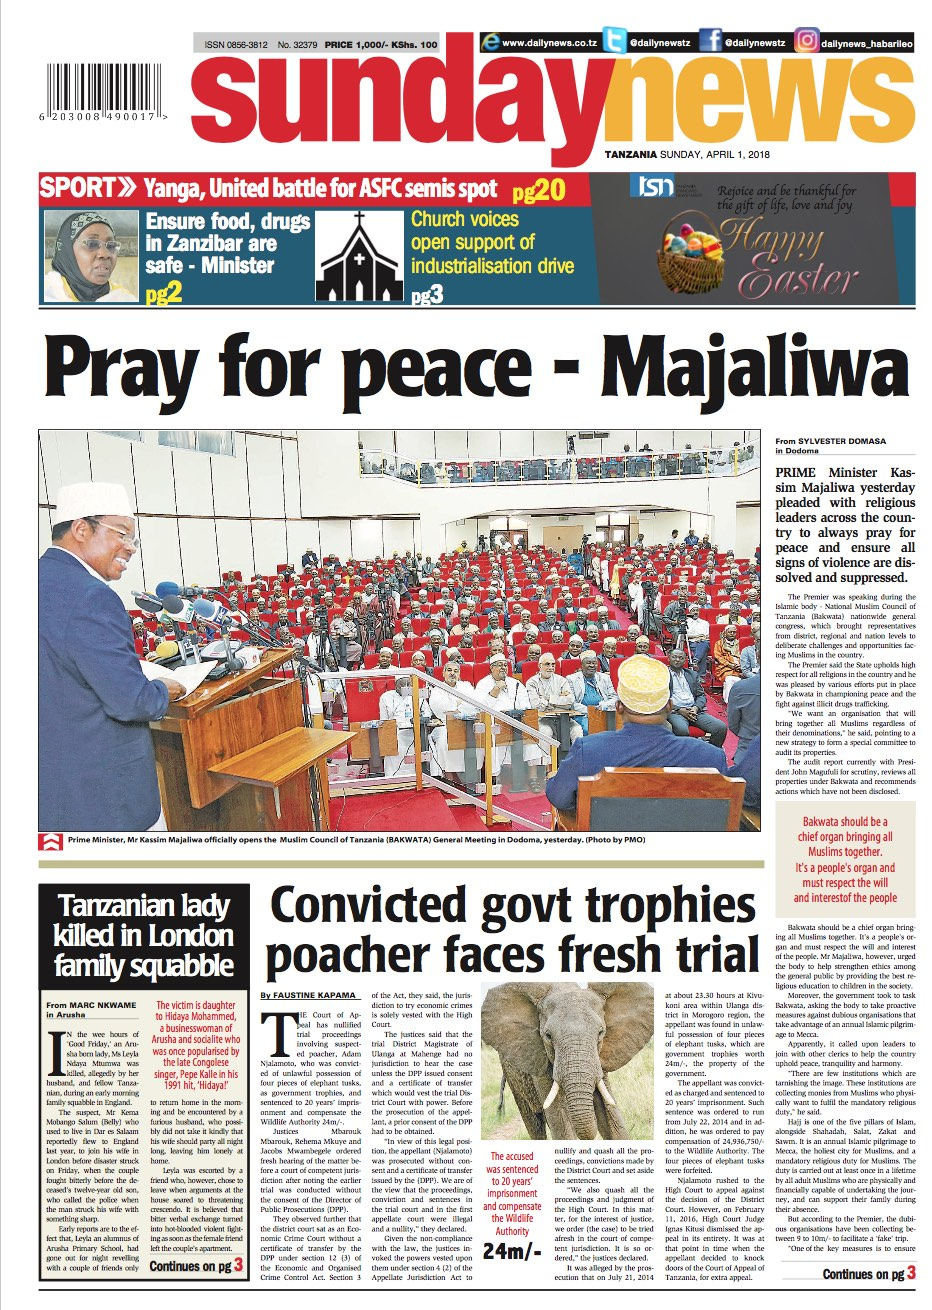 PRAY FOR PEACE   MAJALIWA